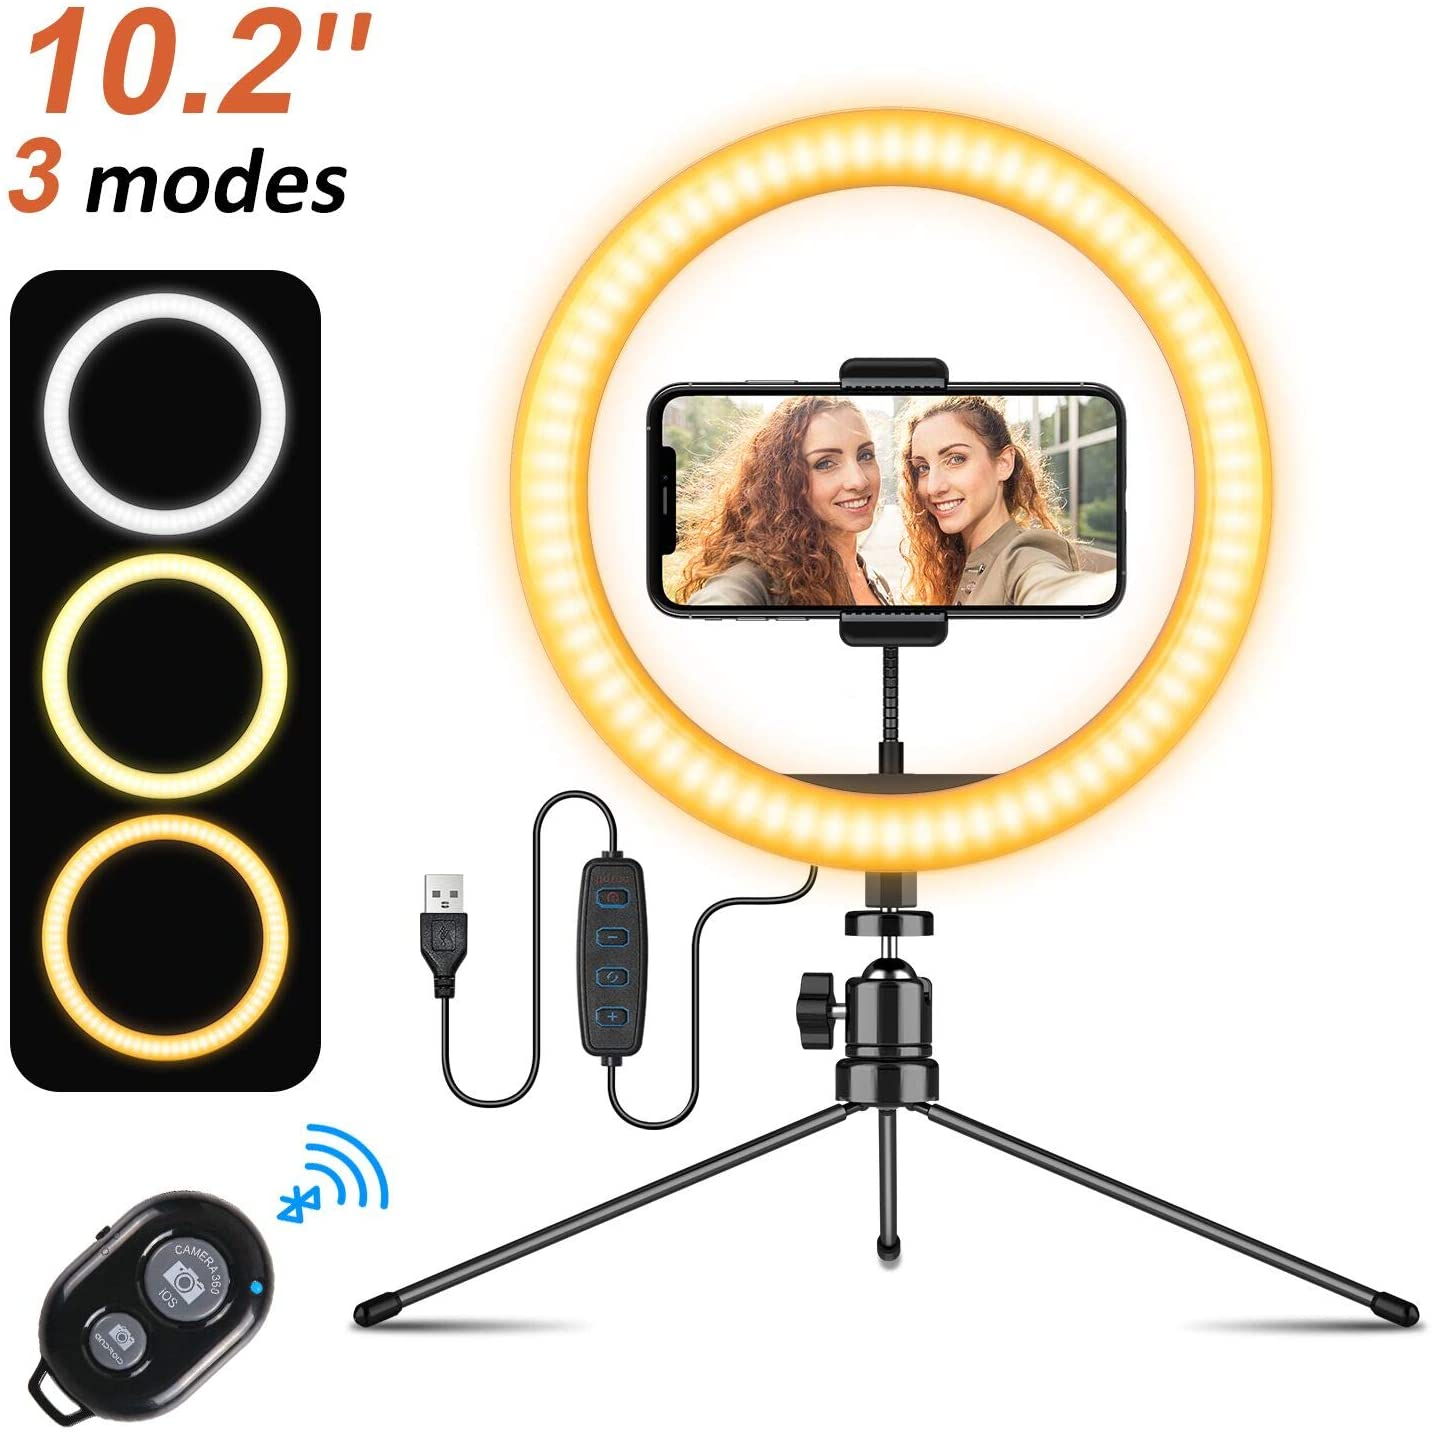 """Ring Light 10.2"""" Selfie Ring Light with Tripod Stand,GUSGU Remote Control Mini LED Ring Light for Live Streaming/Video/Photography,Compatible with iPhone/Android (10 Brightness Level & 3 Light Modes)"""